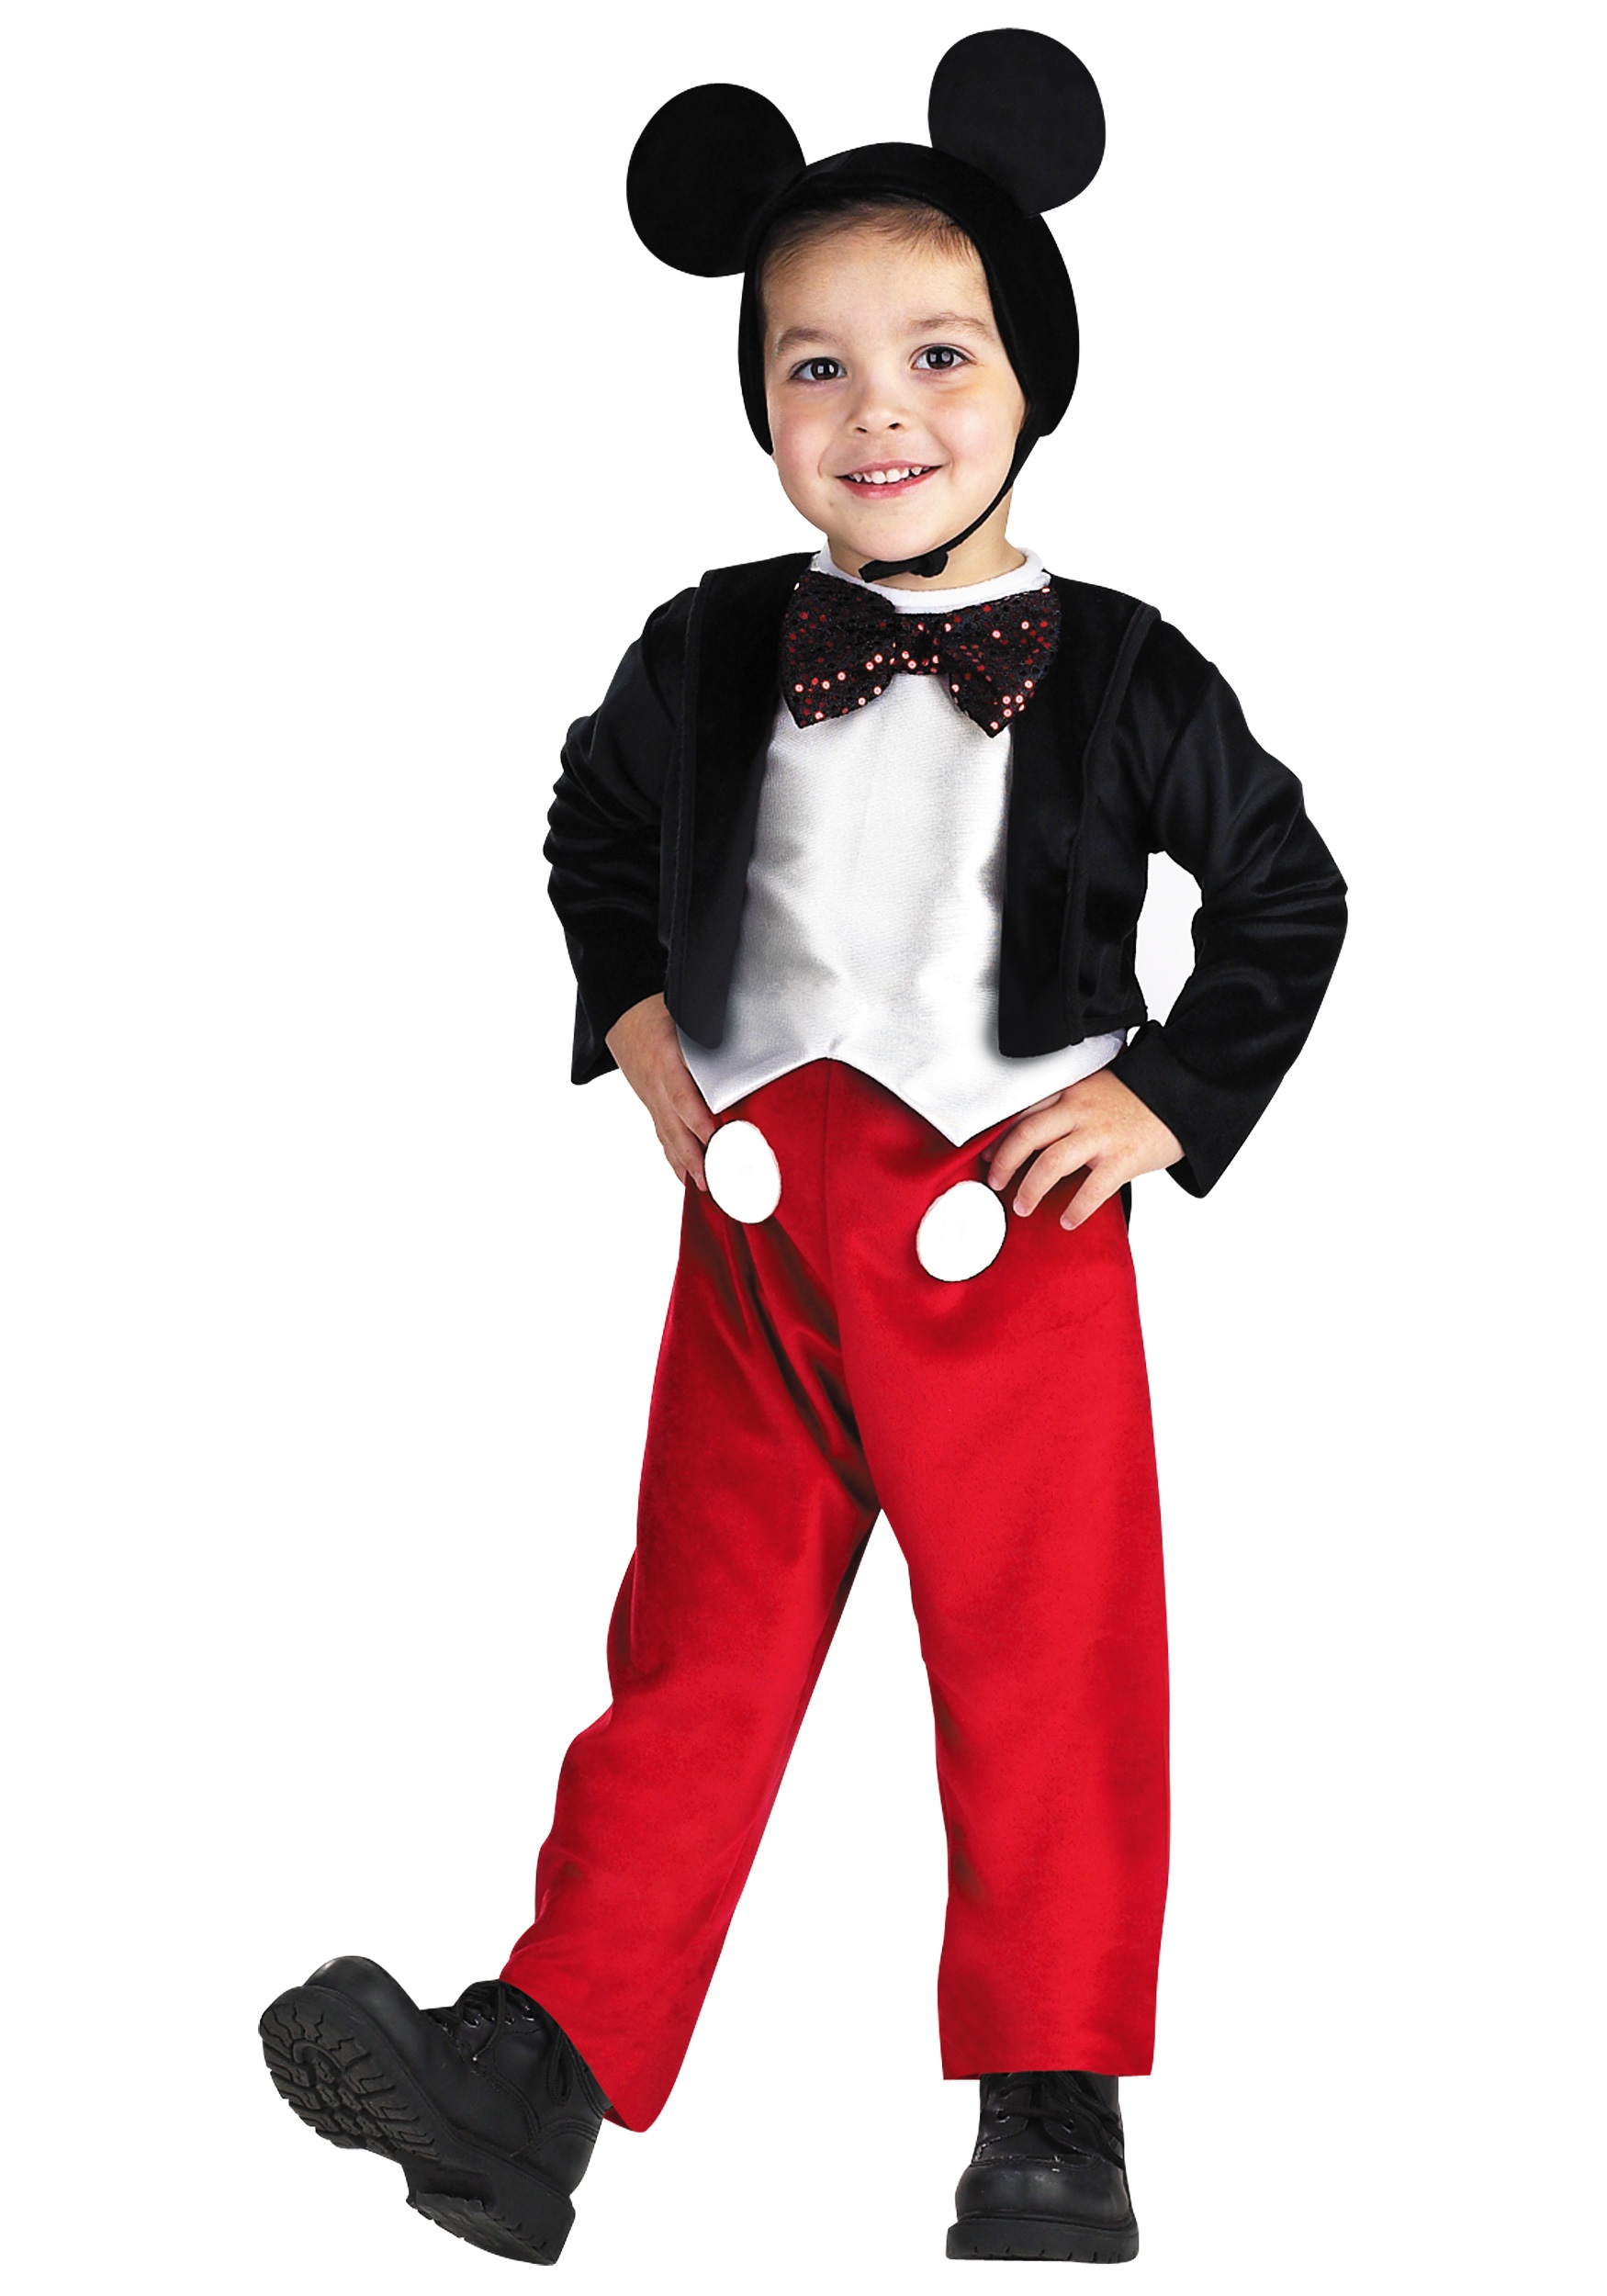 Deluxe Kids Mickey Mouse Costume  sc 1 st  Halloween Costumes & Deluxe Kids Mickey Mouse Costume - Halloween Costumes